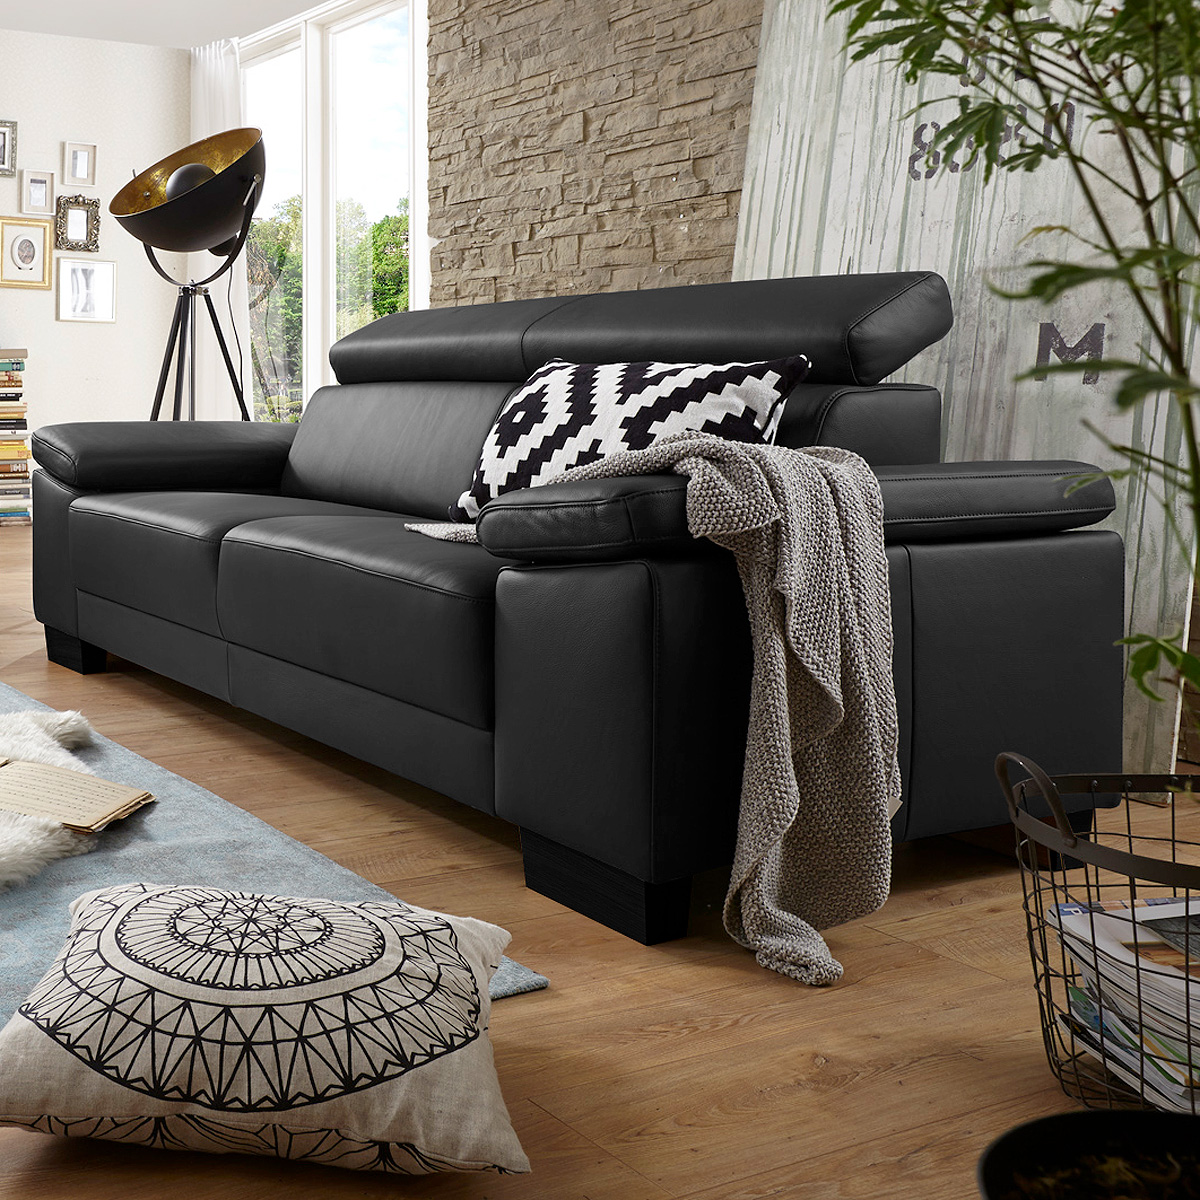 sofa santiago 3er sofa dreisitzer in leder schwarz mit funktion 226 cm. Black Bedroom Furniture Sets. Home Design Ideas